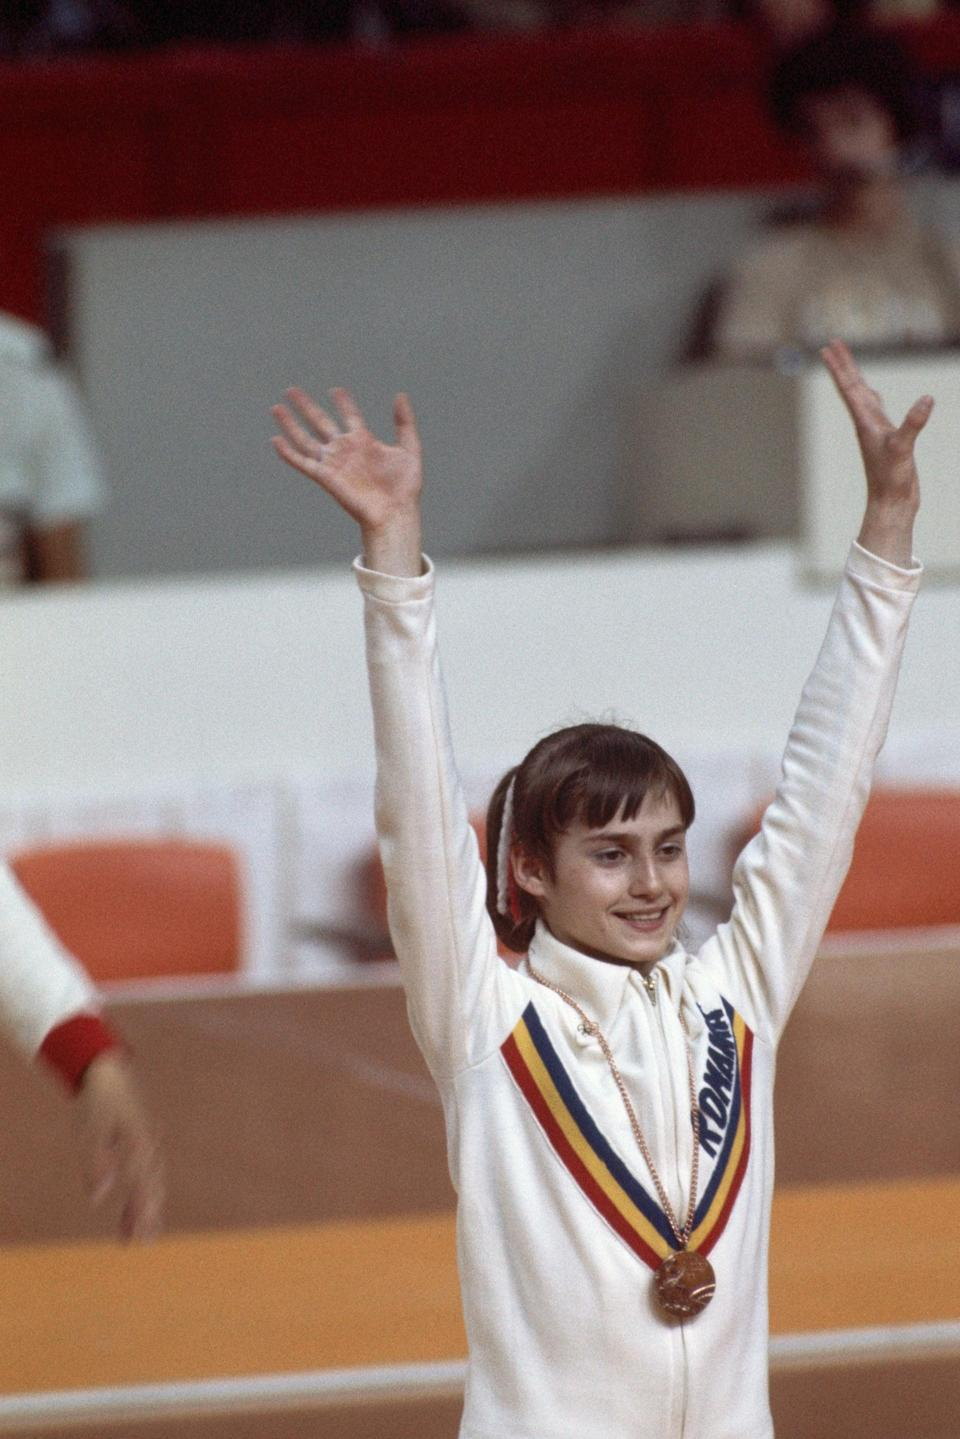 <p>Nadia Comăneci, the first Olympic gymnast to score a perfect 10, didn't just wear one medal during the 1976 Olympic games, but this one allowed her to show off her Romania sports jacket that matched the same Adidas crafted bodysuit she wore for that iconic moment, along with the ribbon in her hair. She received a total of <i>six</i> more perfect 10s during events leading up to her three gold medals that year.</p>